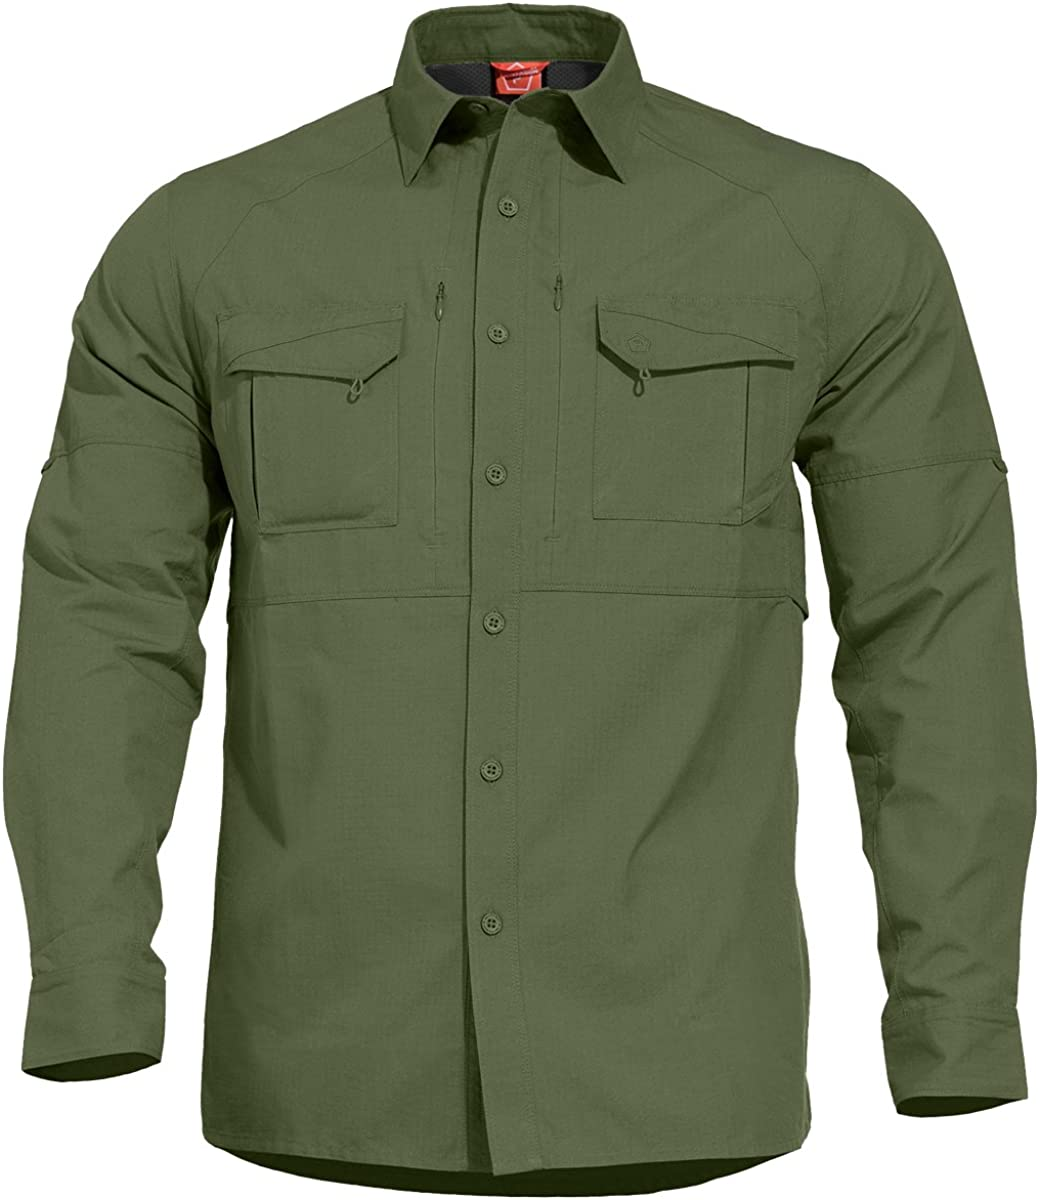 Pentagon Free Shipping New Men's Chase Max 53% OFF Tactical Camo Green Shirt